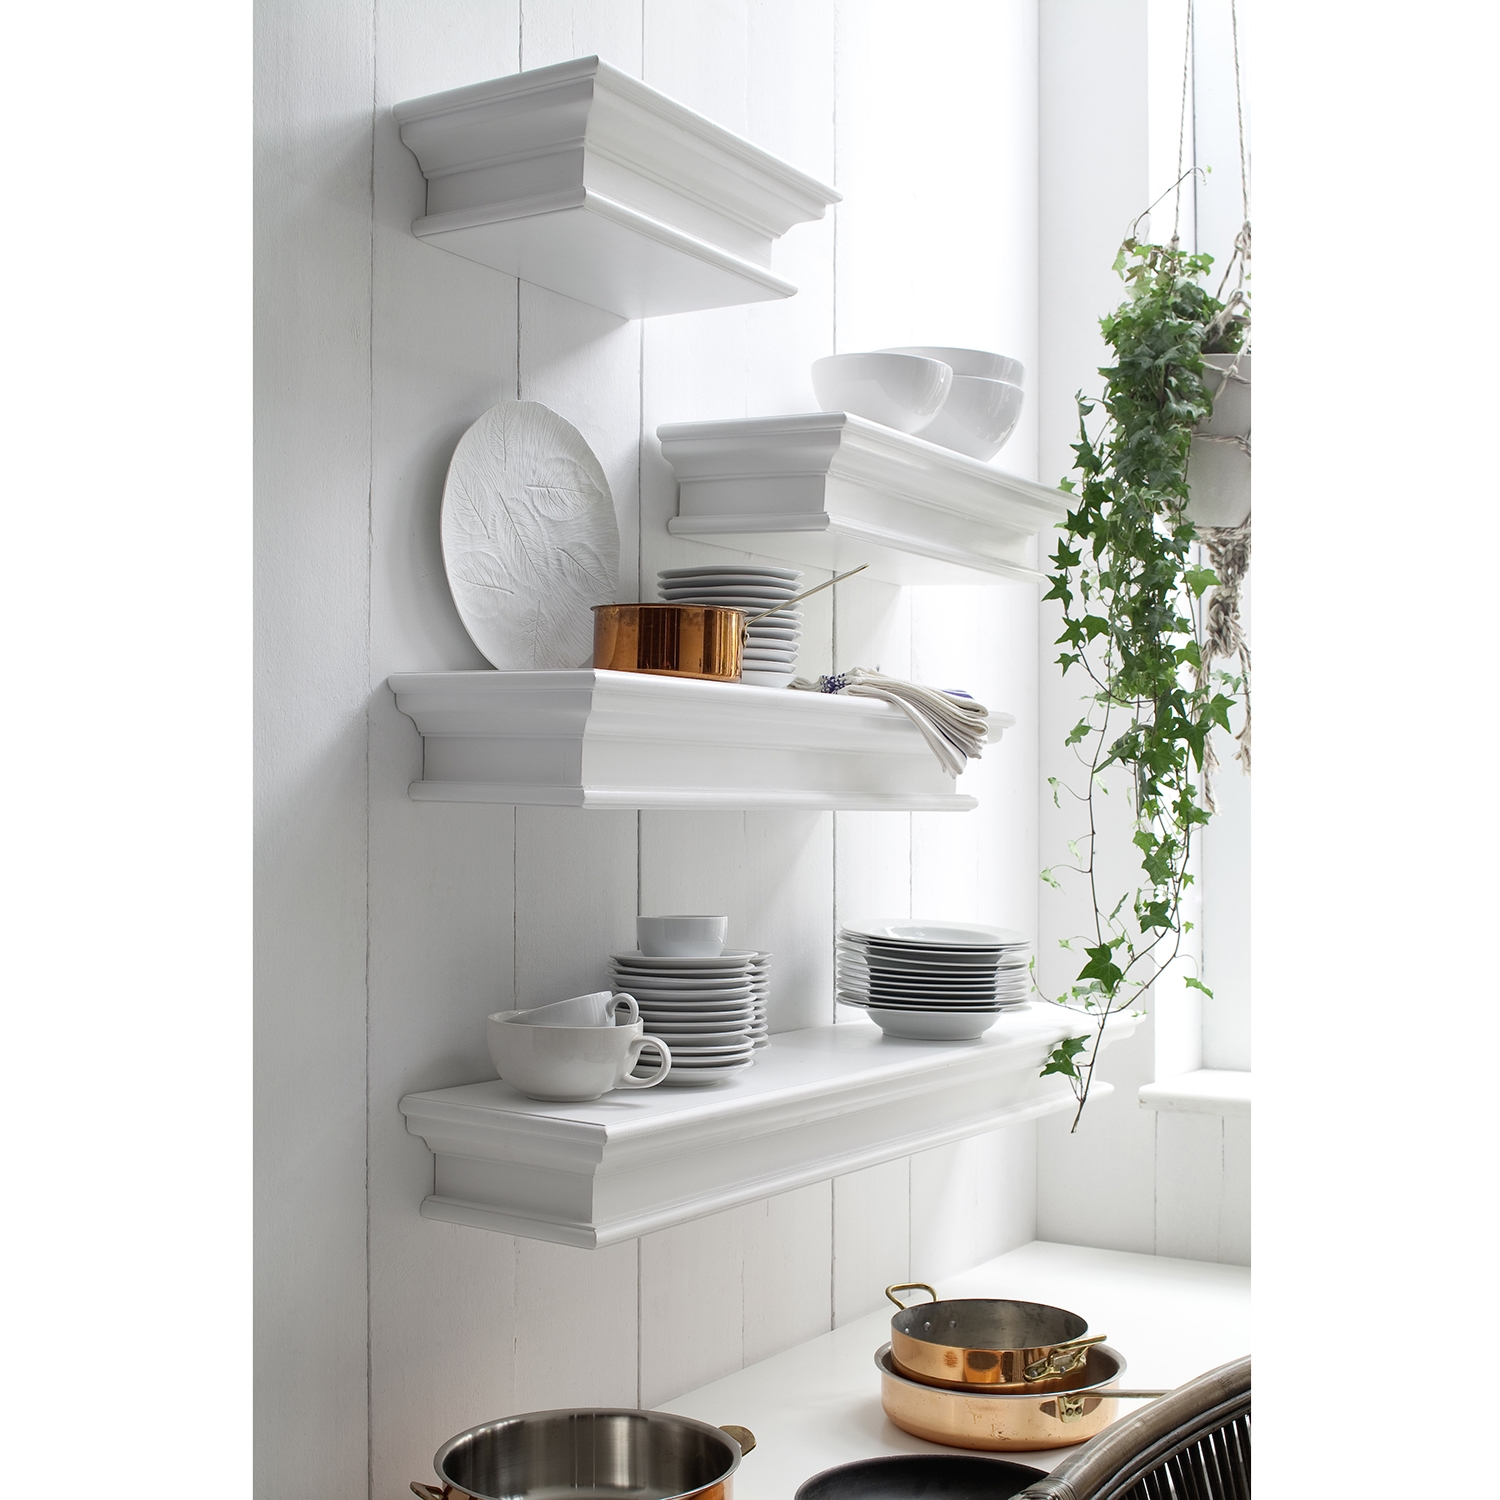 Halifax Floating Short Wall Shelf - Pure White - NSOLO-D163